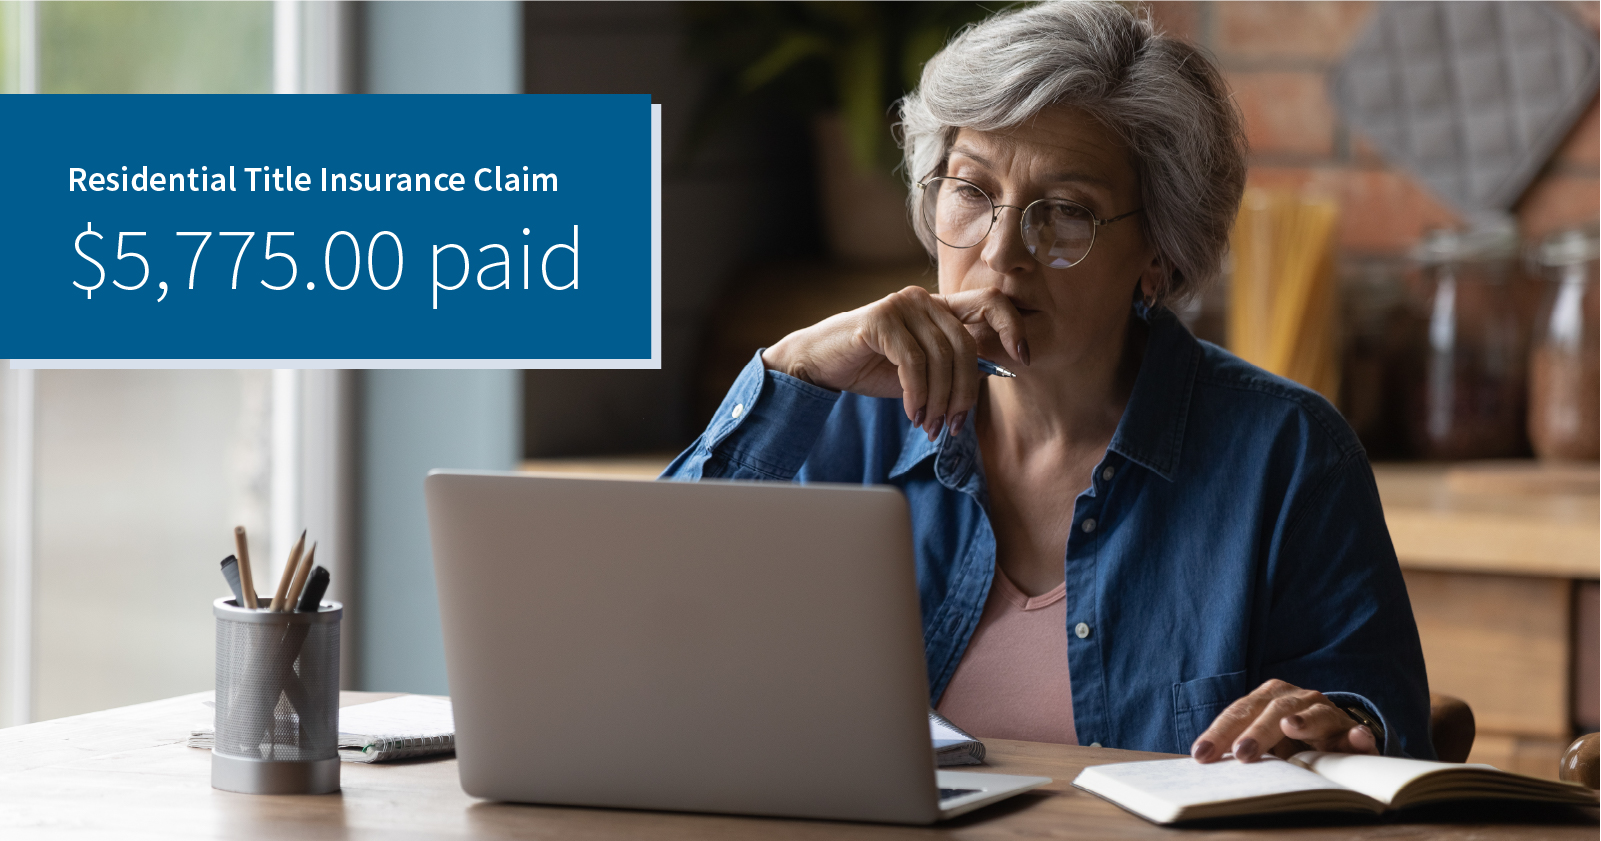 photo of a woman seated in her home considering information on her laptop screen. Caption: Residential Solutions Claim $5,775.00 paid